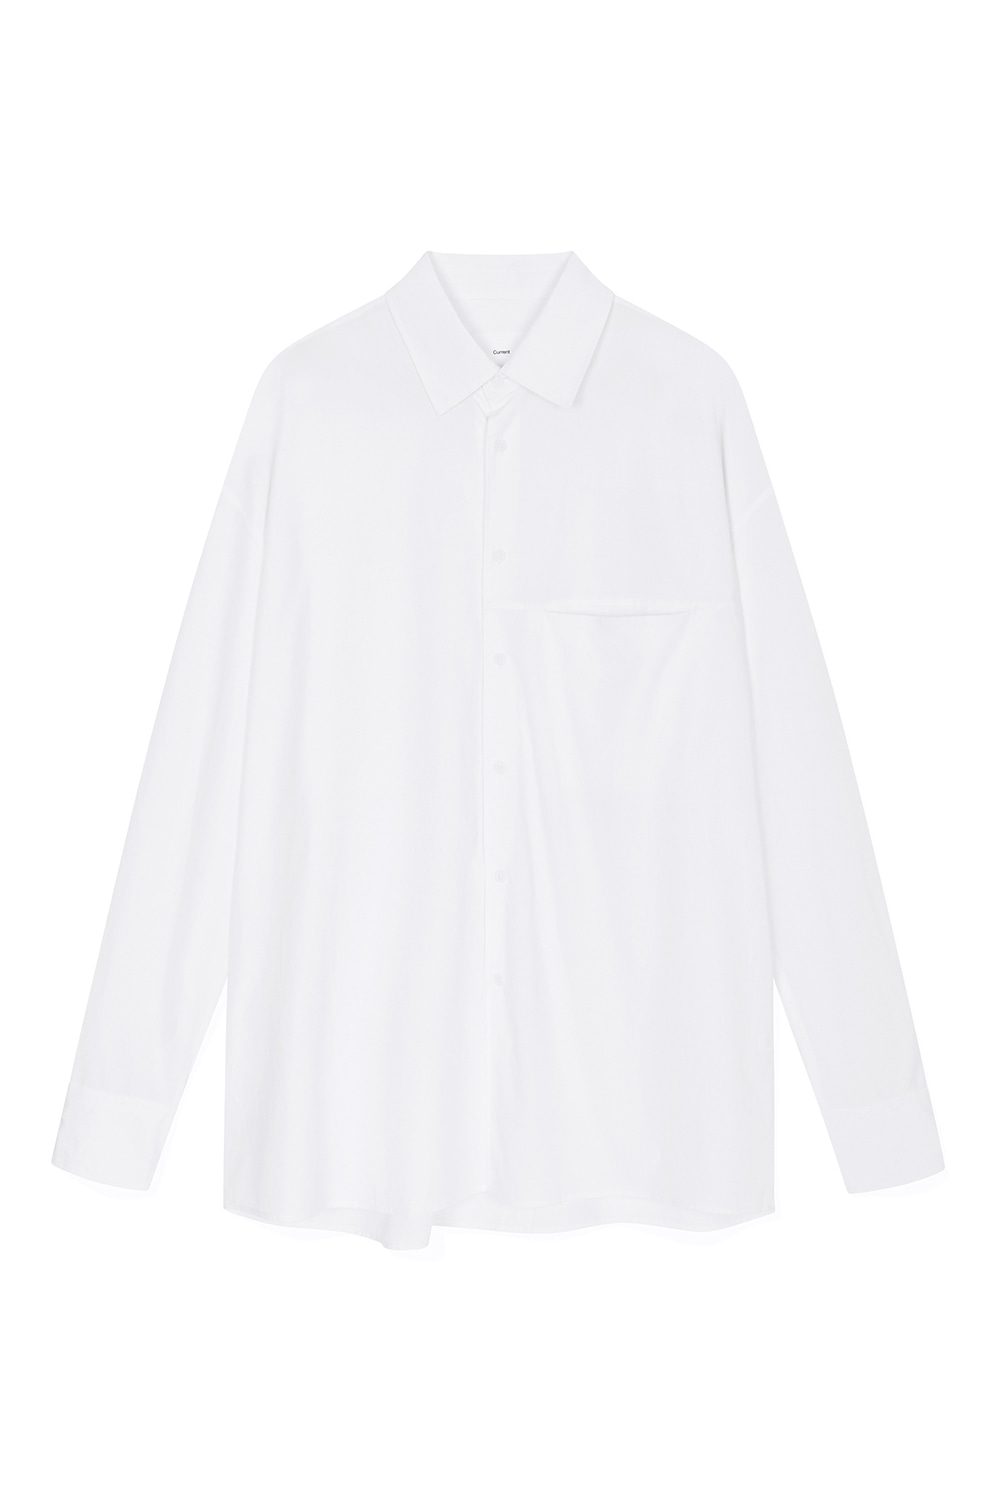 Overfit Shirts Men JA [White] -10%